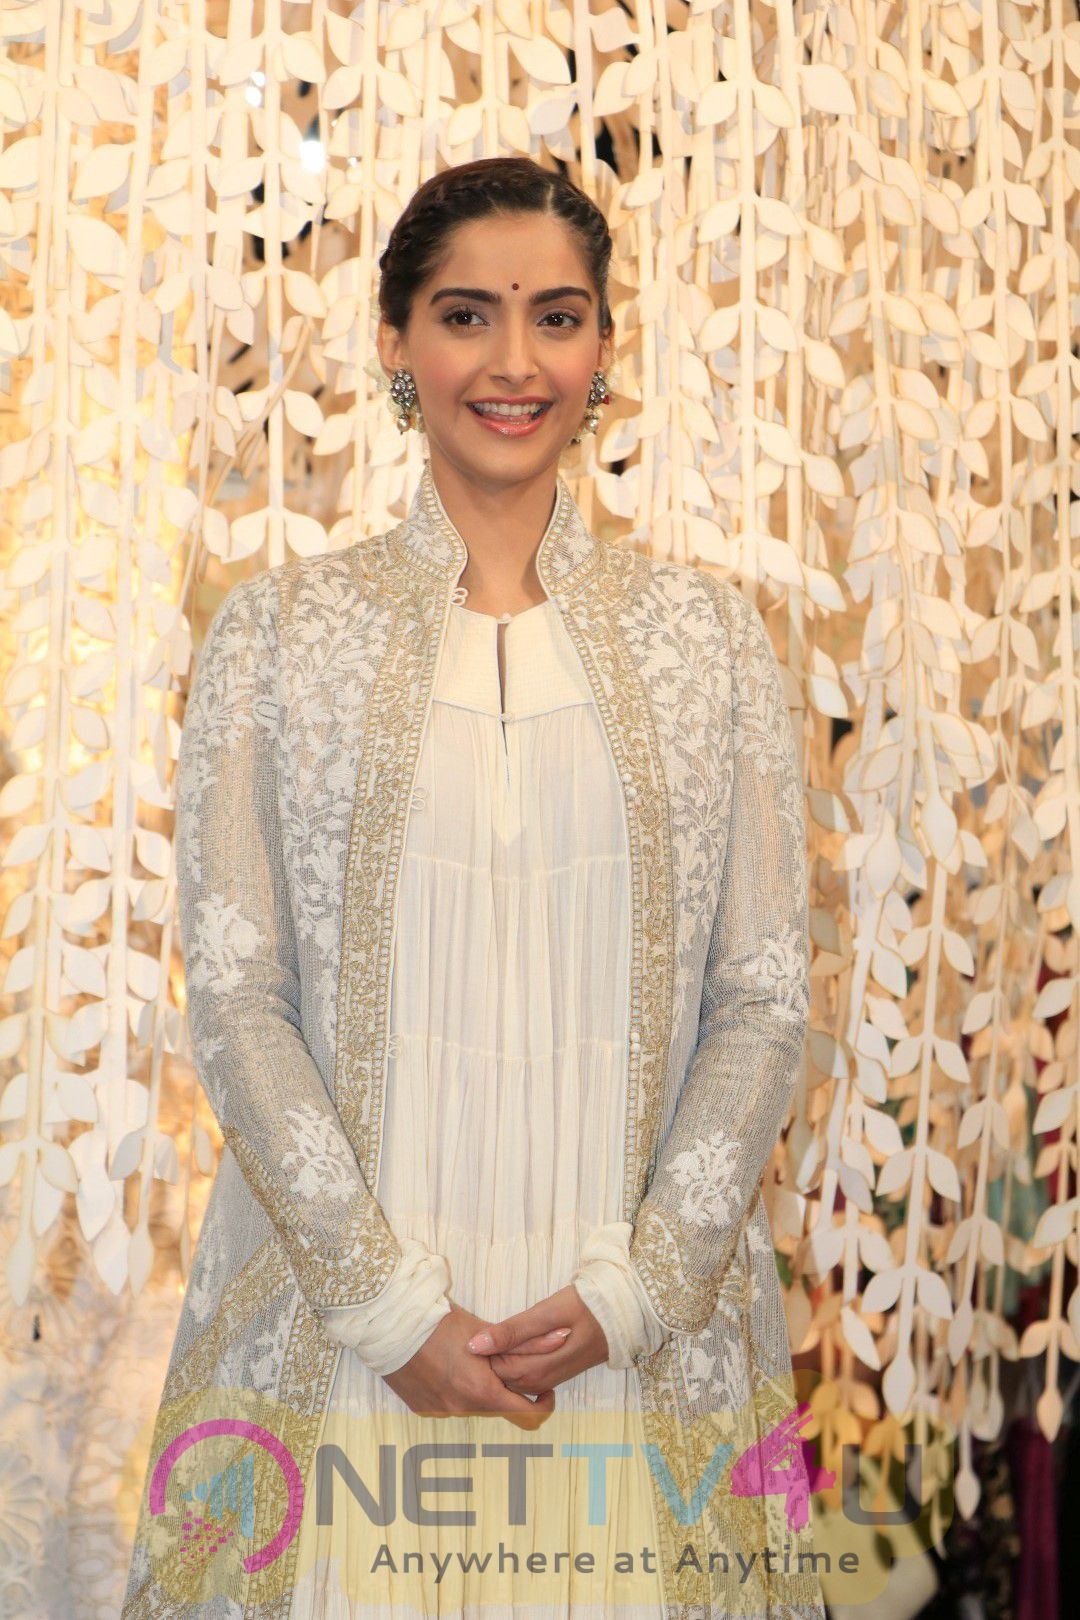 Opening Of Imc Ladies Wing Women Entrepreneur Exhibition By Sonam Kapoor Stills